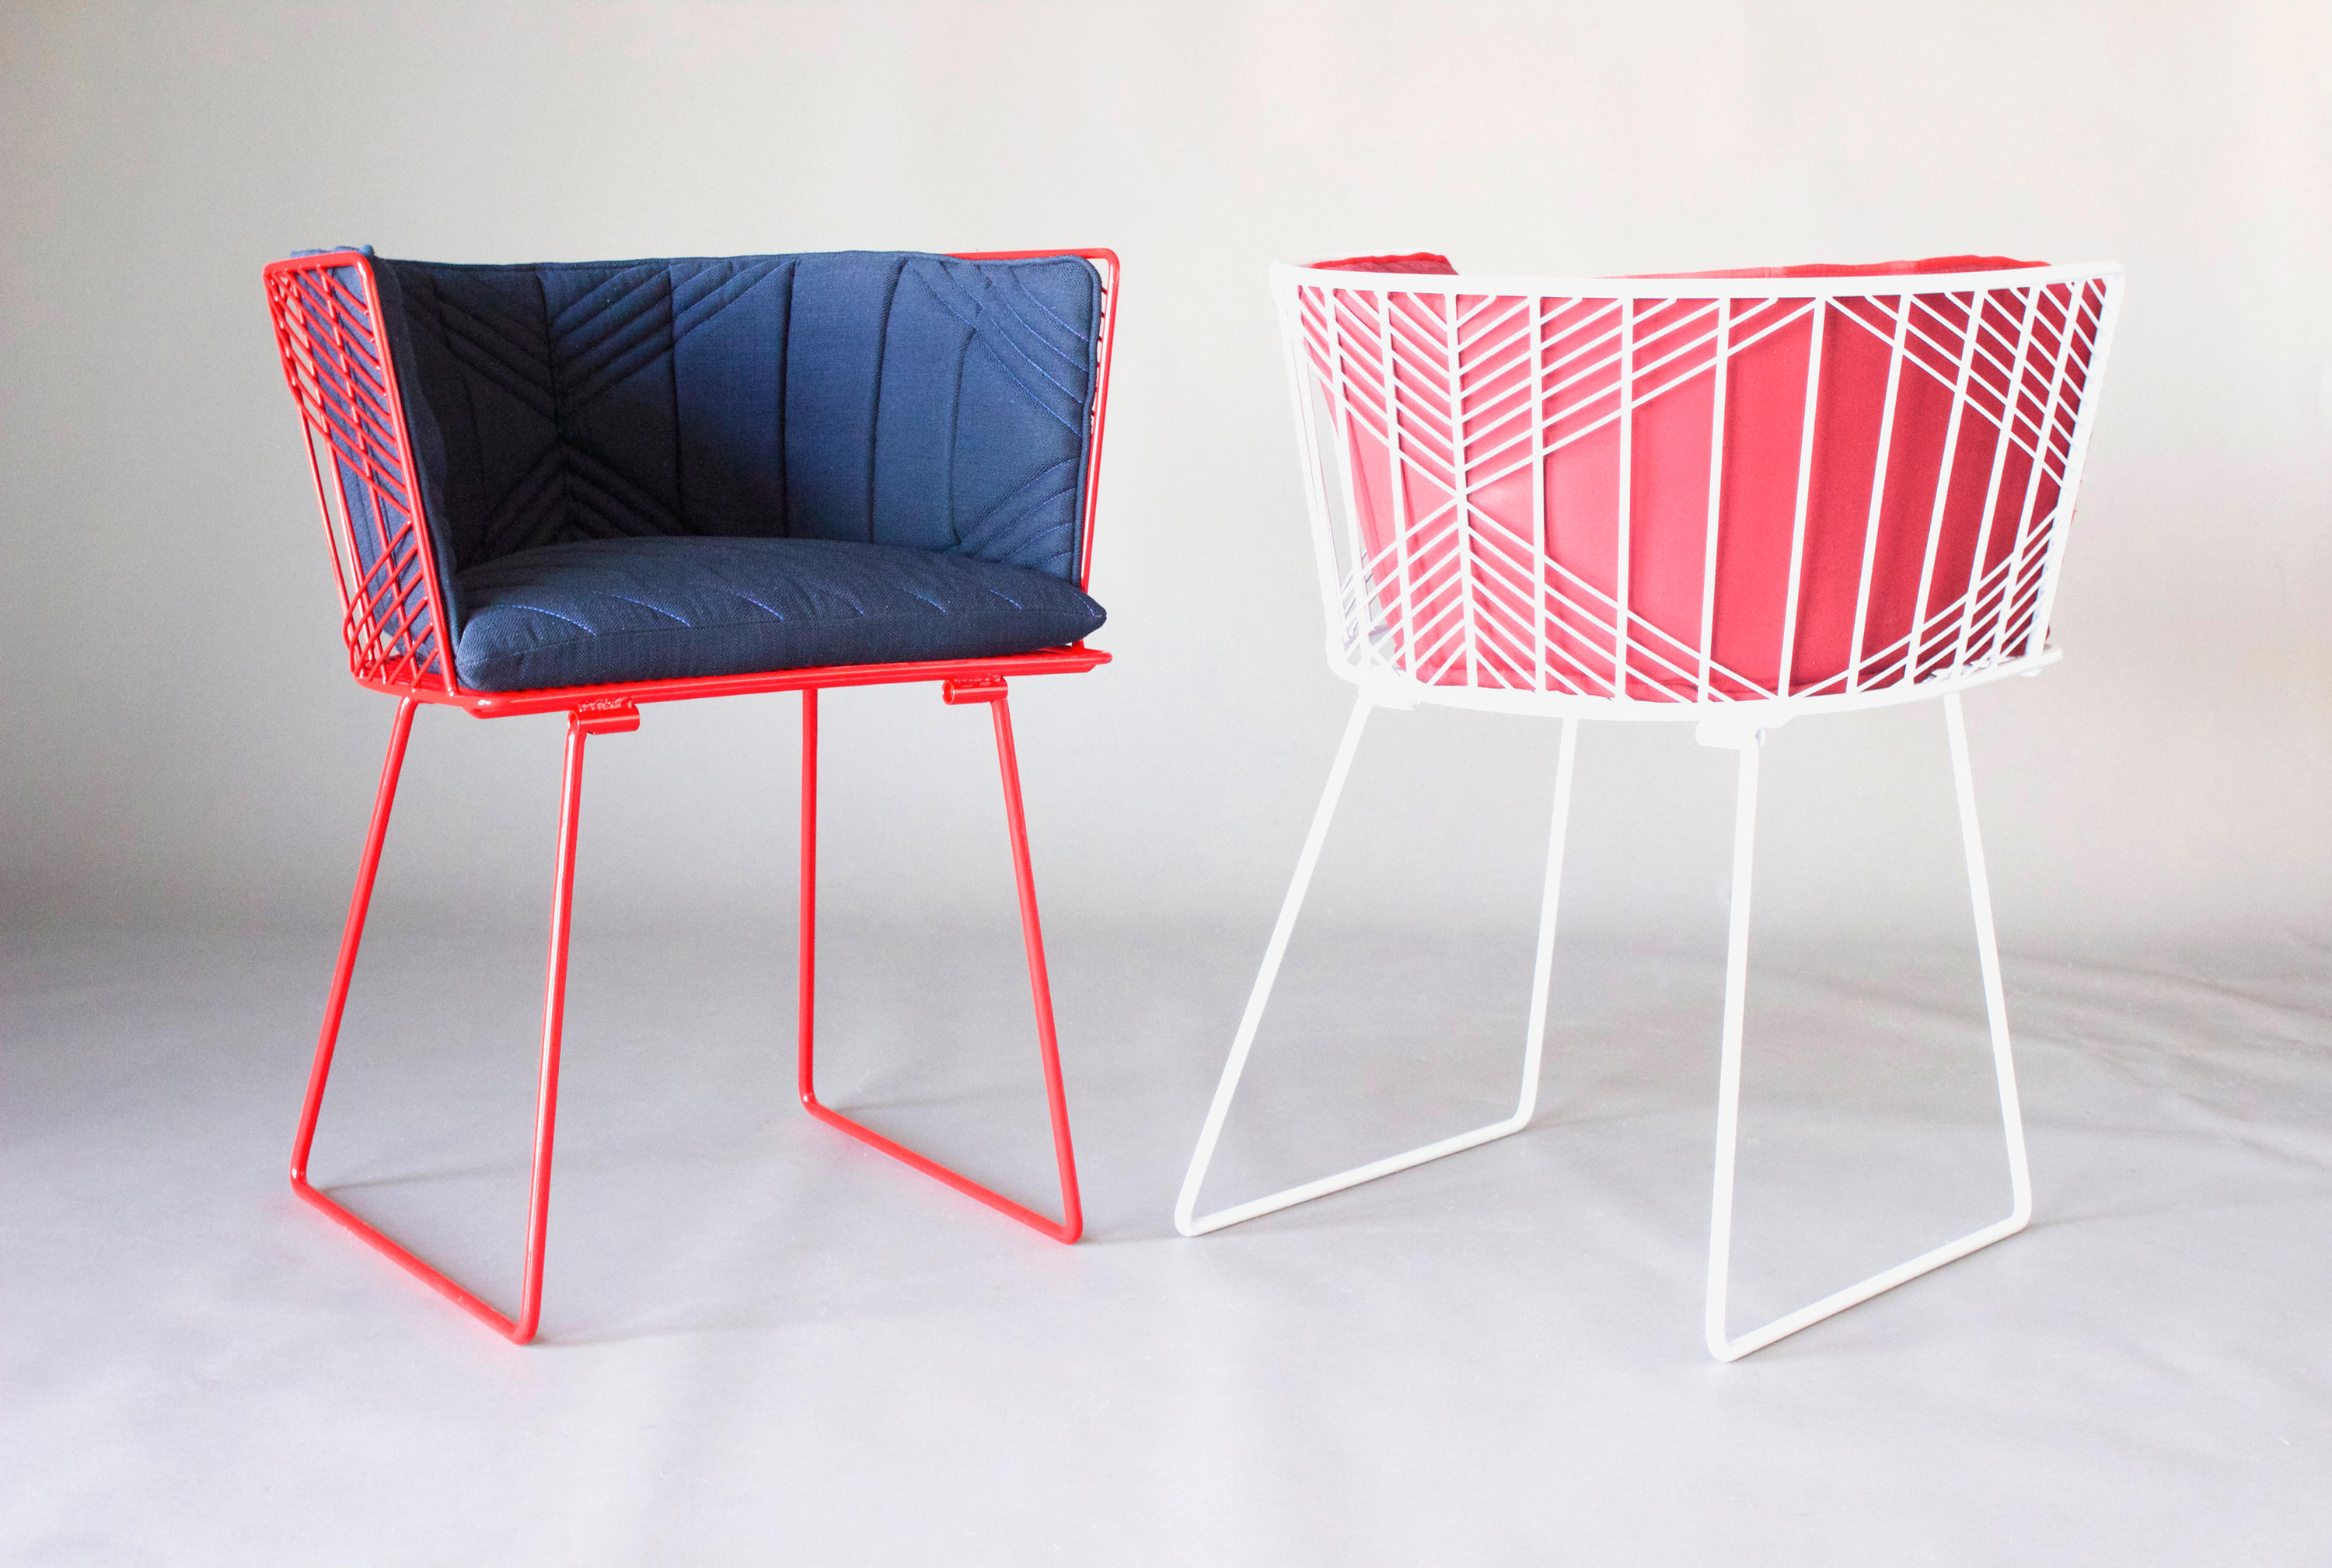 The Captain Chair Garden Chairs From Bend Goods Architonic